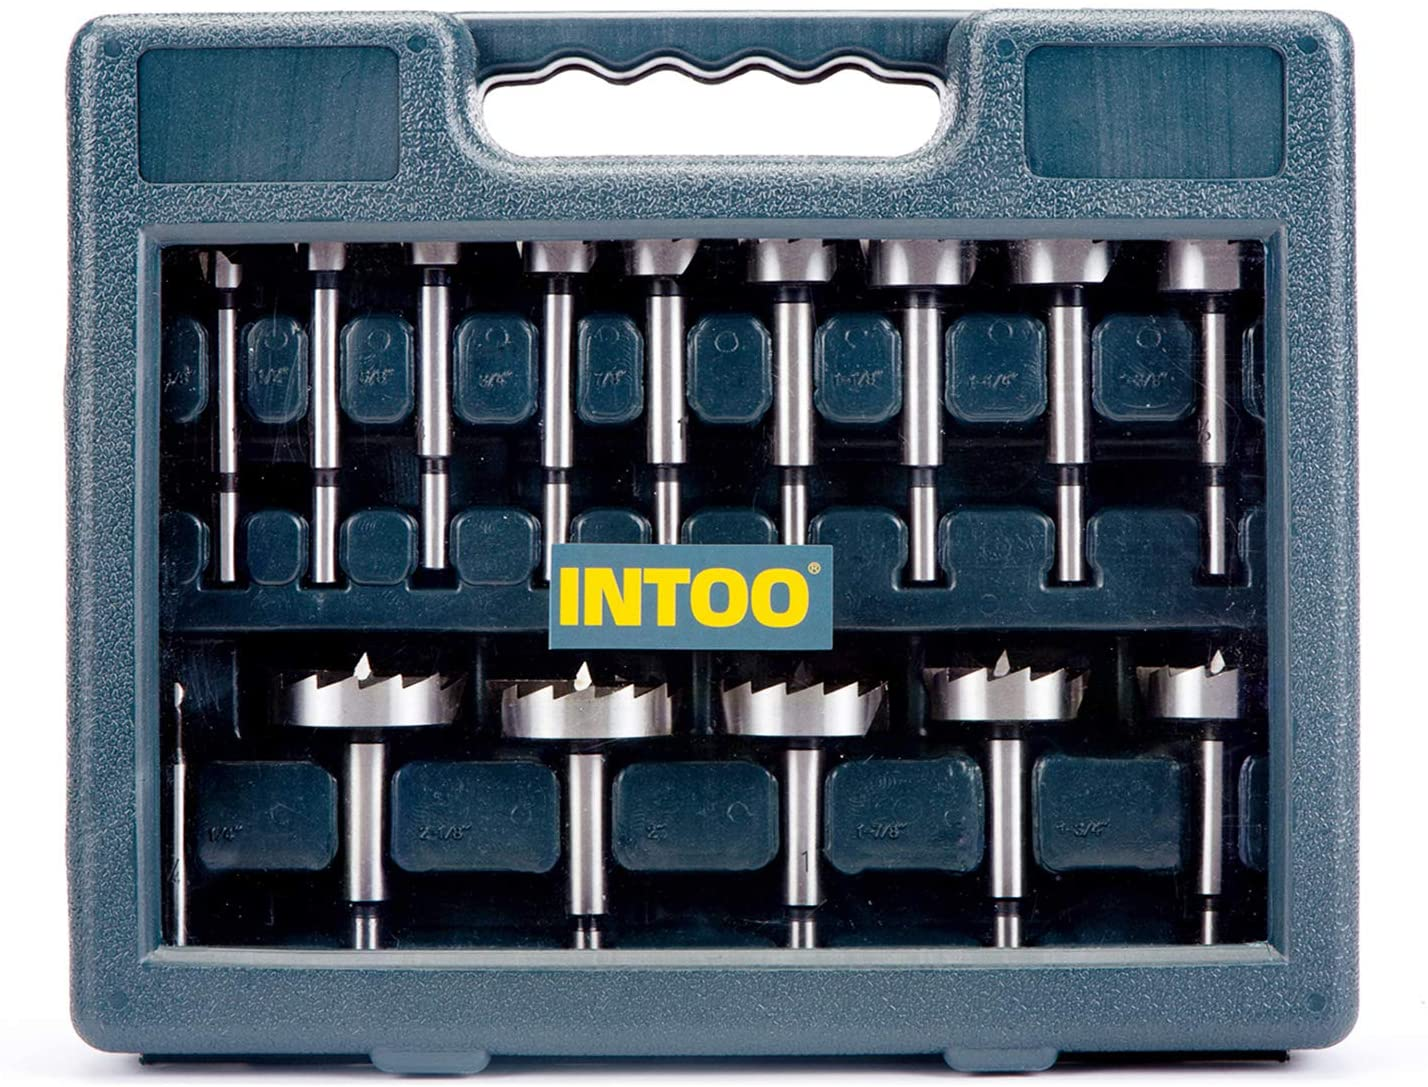 INTOO Forstner Bit Set 16 pcs Wood Drill Bit Set